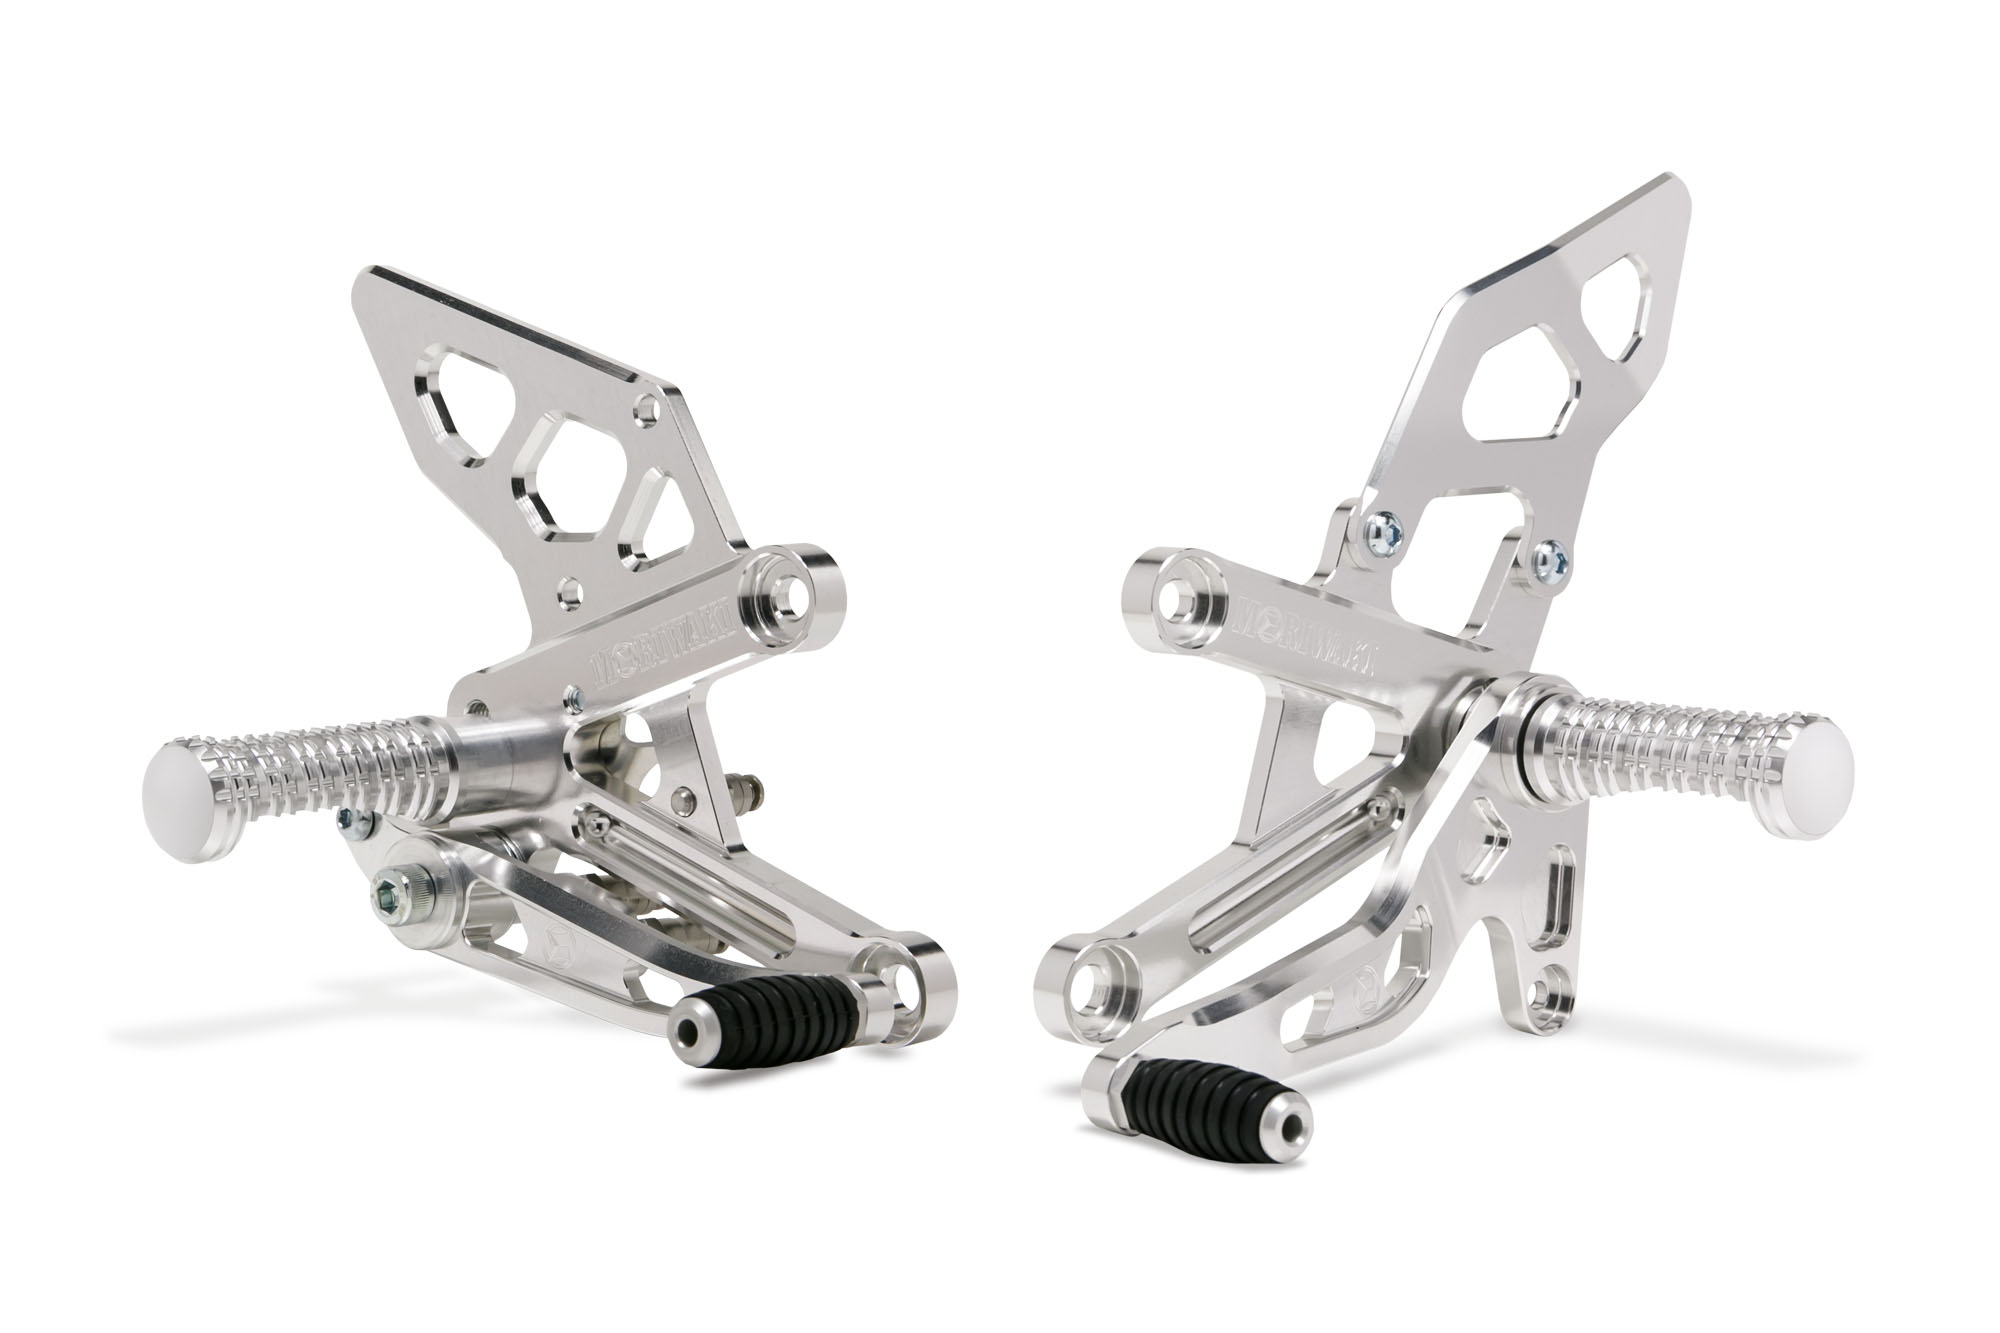 CBR250RR 17- BACK STEP KIT SILVER